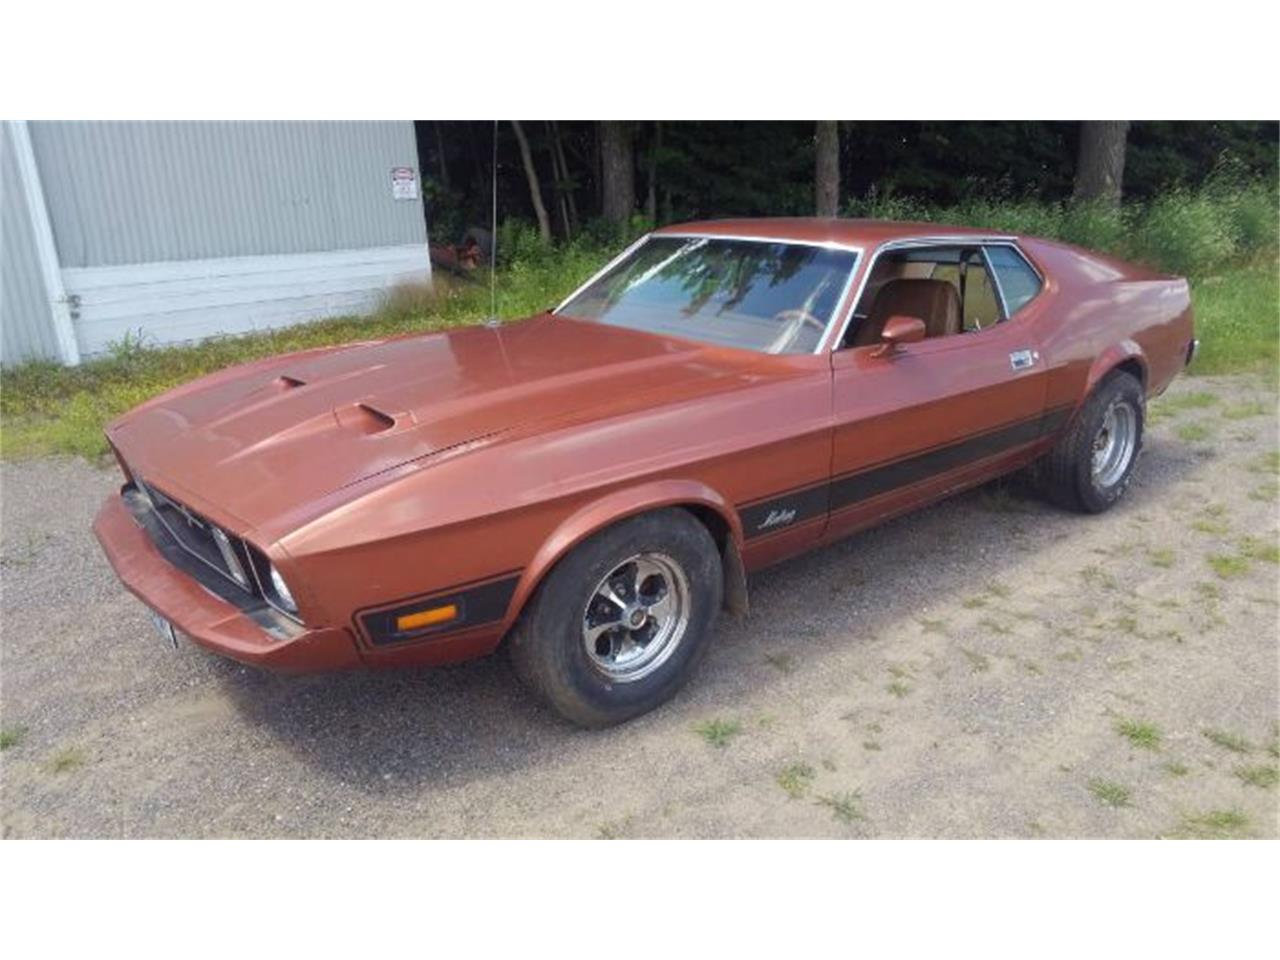 Large Picture of Classic 1973 Ford Mustang located in Michigan - $15,995.00 - R0HN